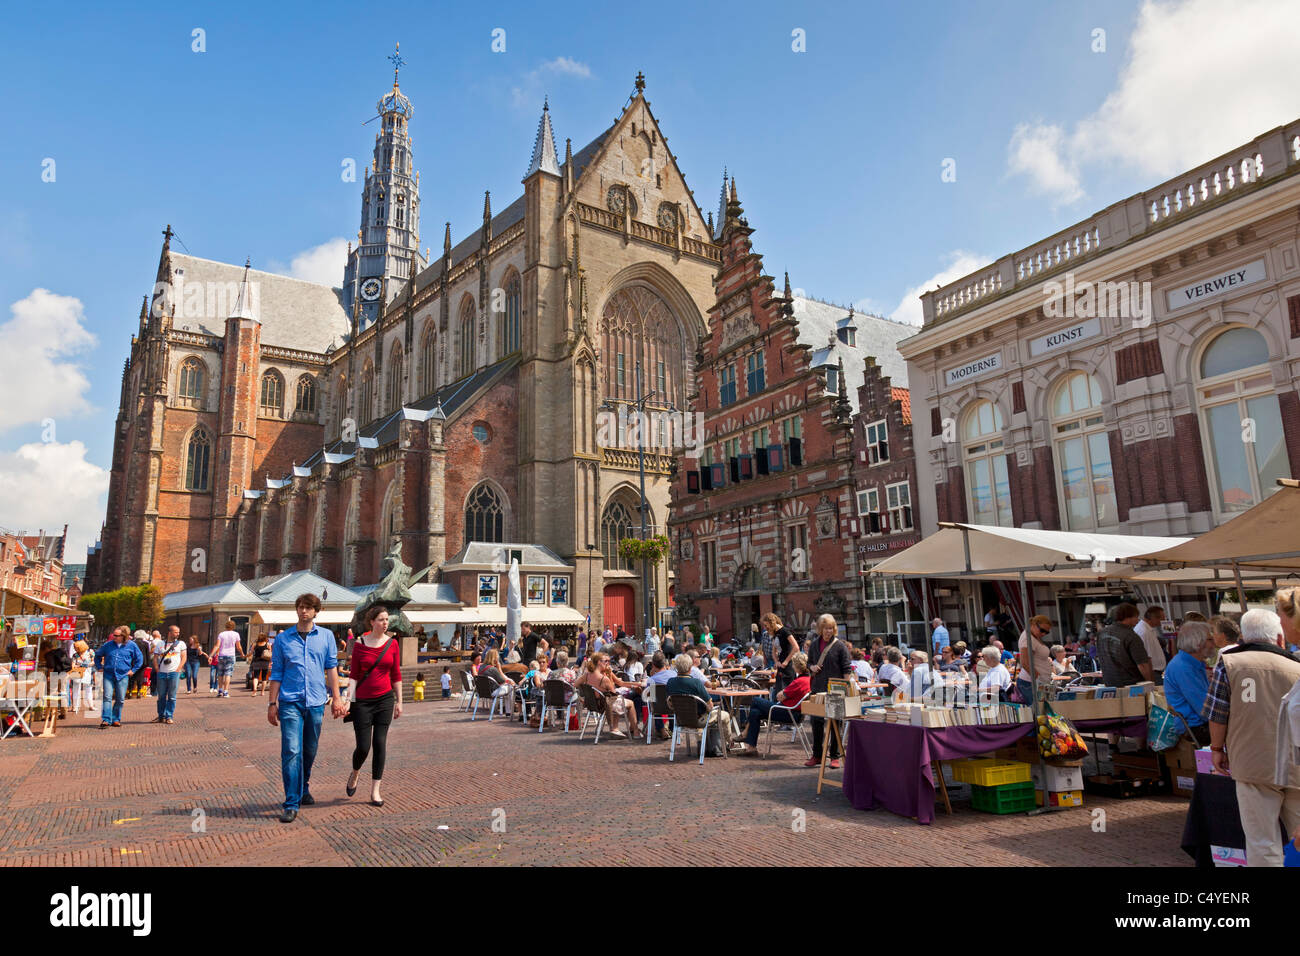 Grote Markt or market place and Sint-Bavokerk, St Bavo Church, or Grote Kerk, Haarlem, North Holland, Netherlands. - Stock Image